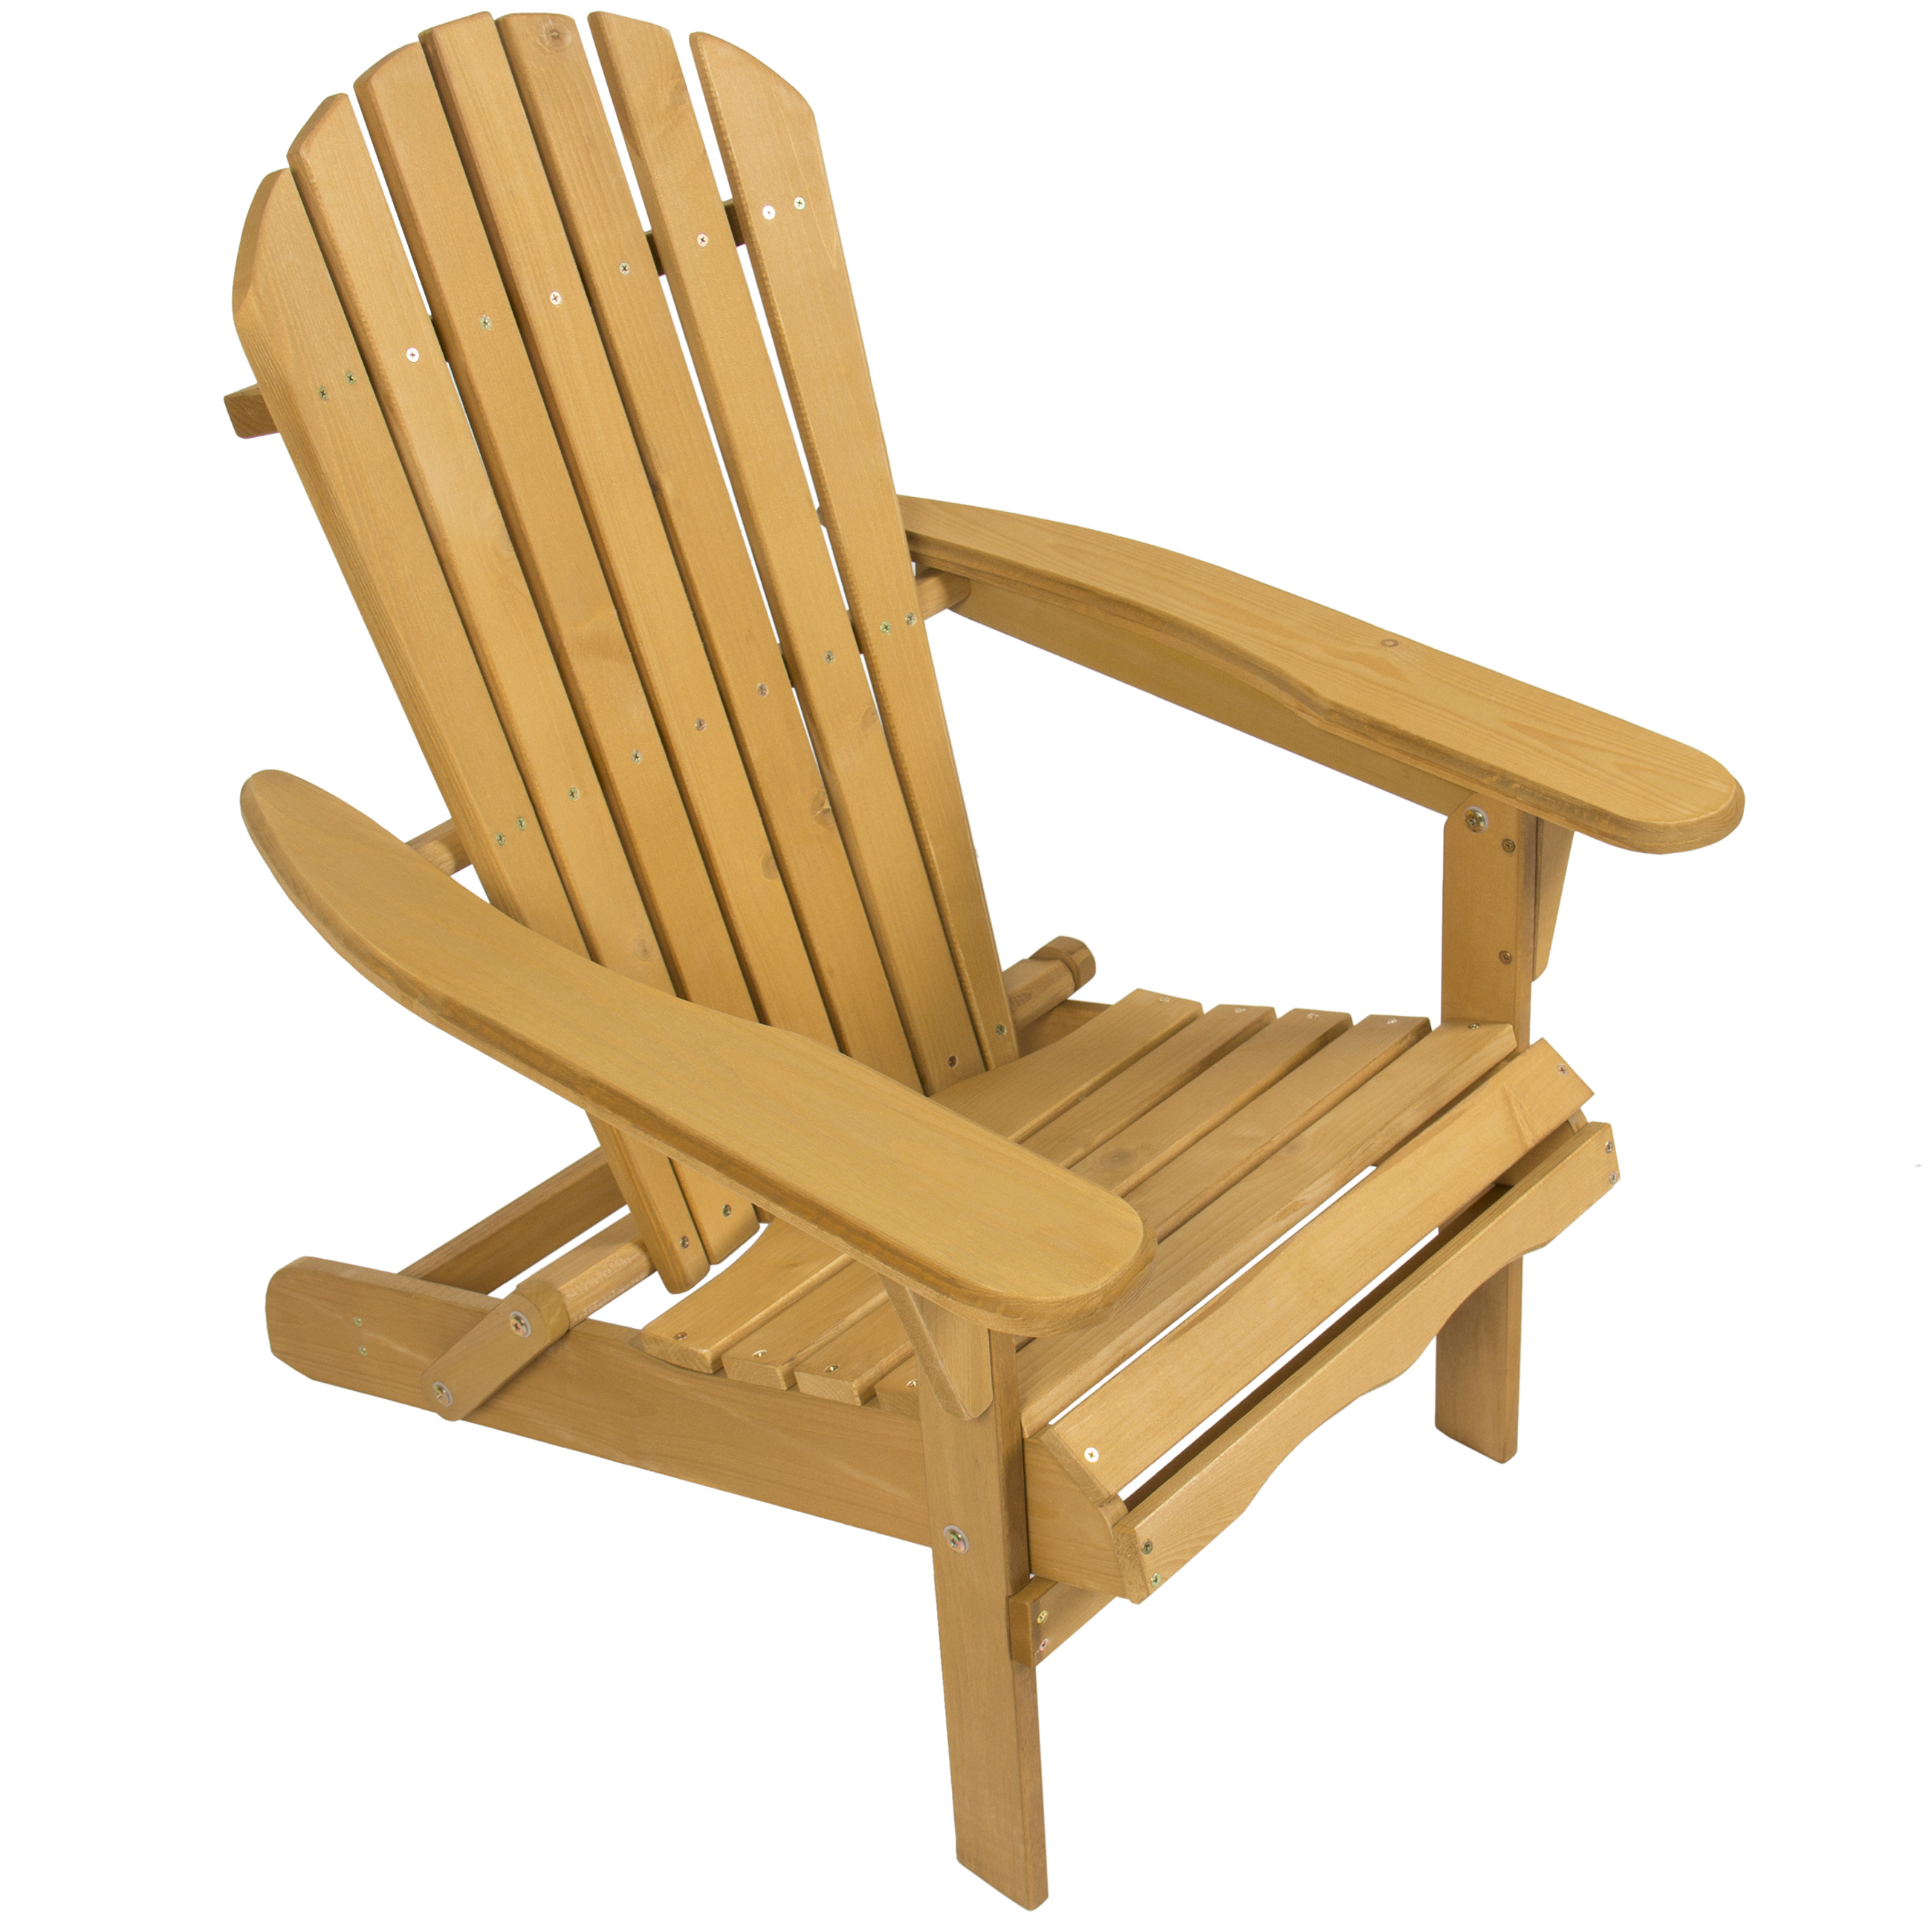 Genial Best Choice Products Outdoor Adirondack Wood Chair Foldable Patio Lawn Deck  Garden Furniture   Walmart.com